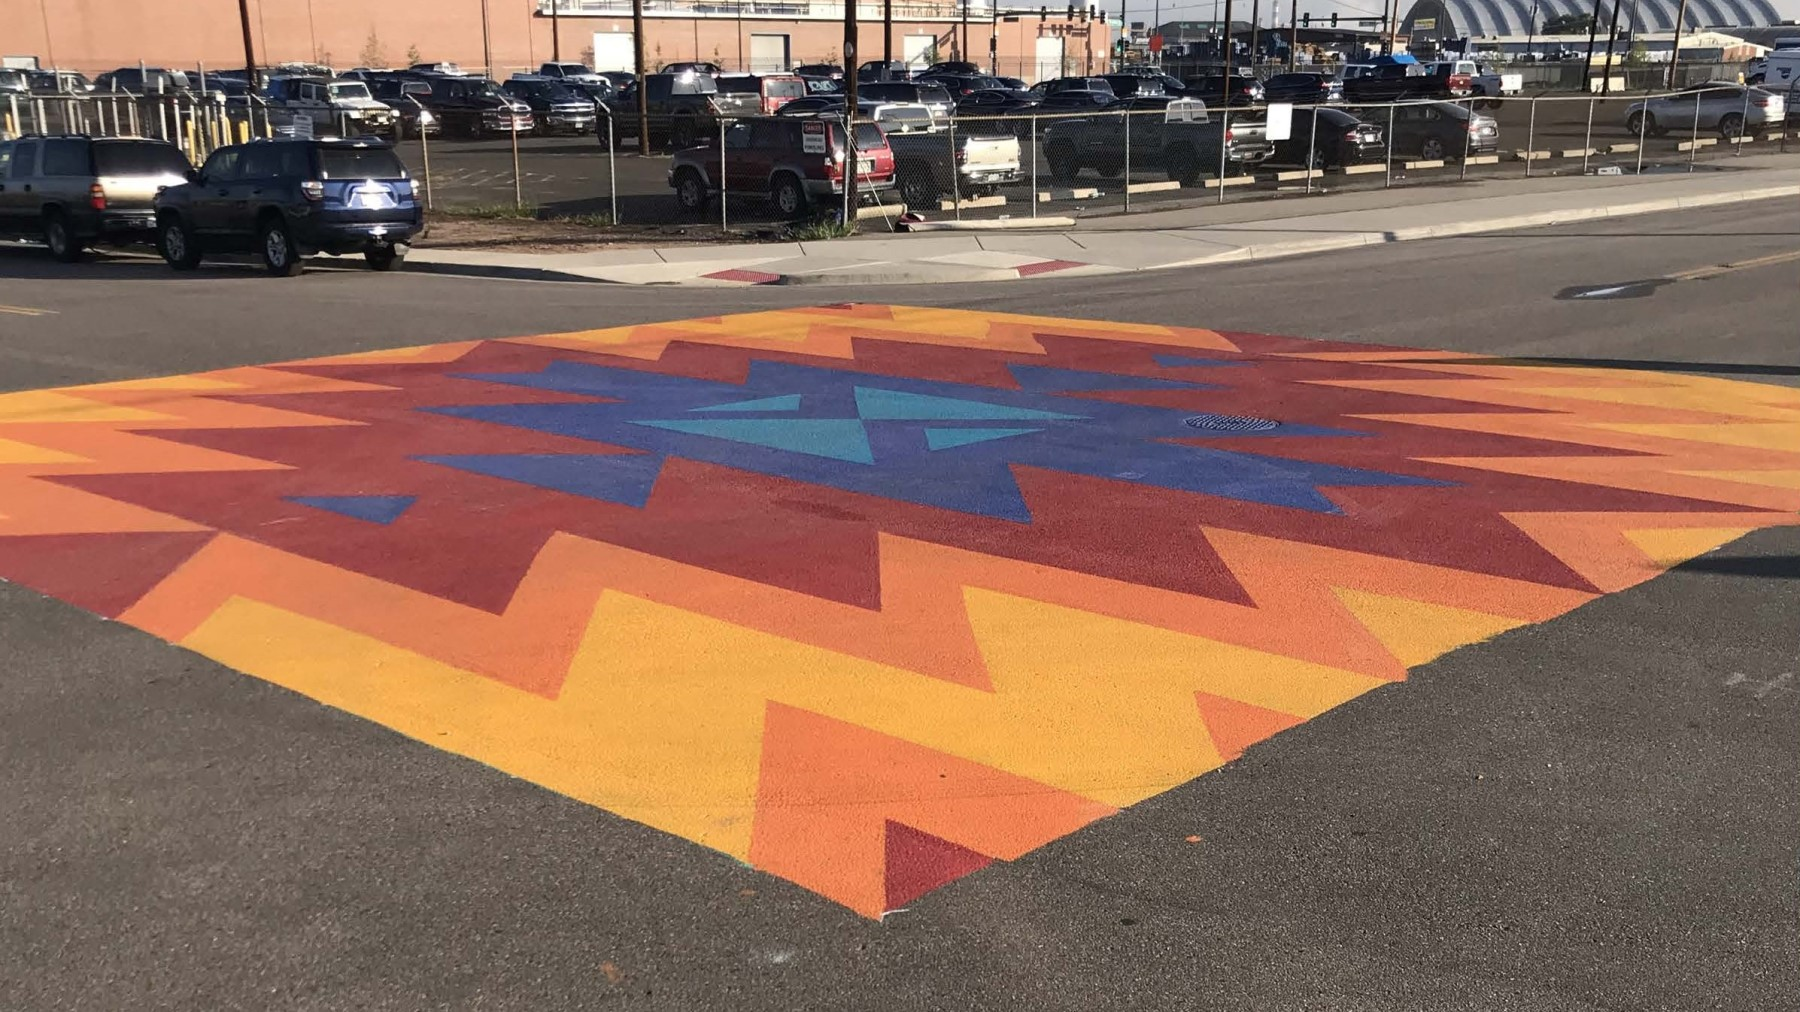 local artists painted an intersection mural at 39th Street and Wynkoop Street